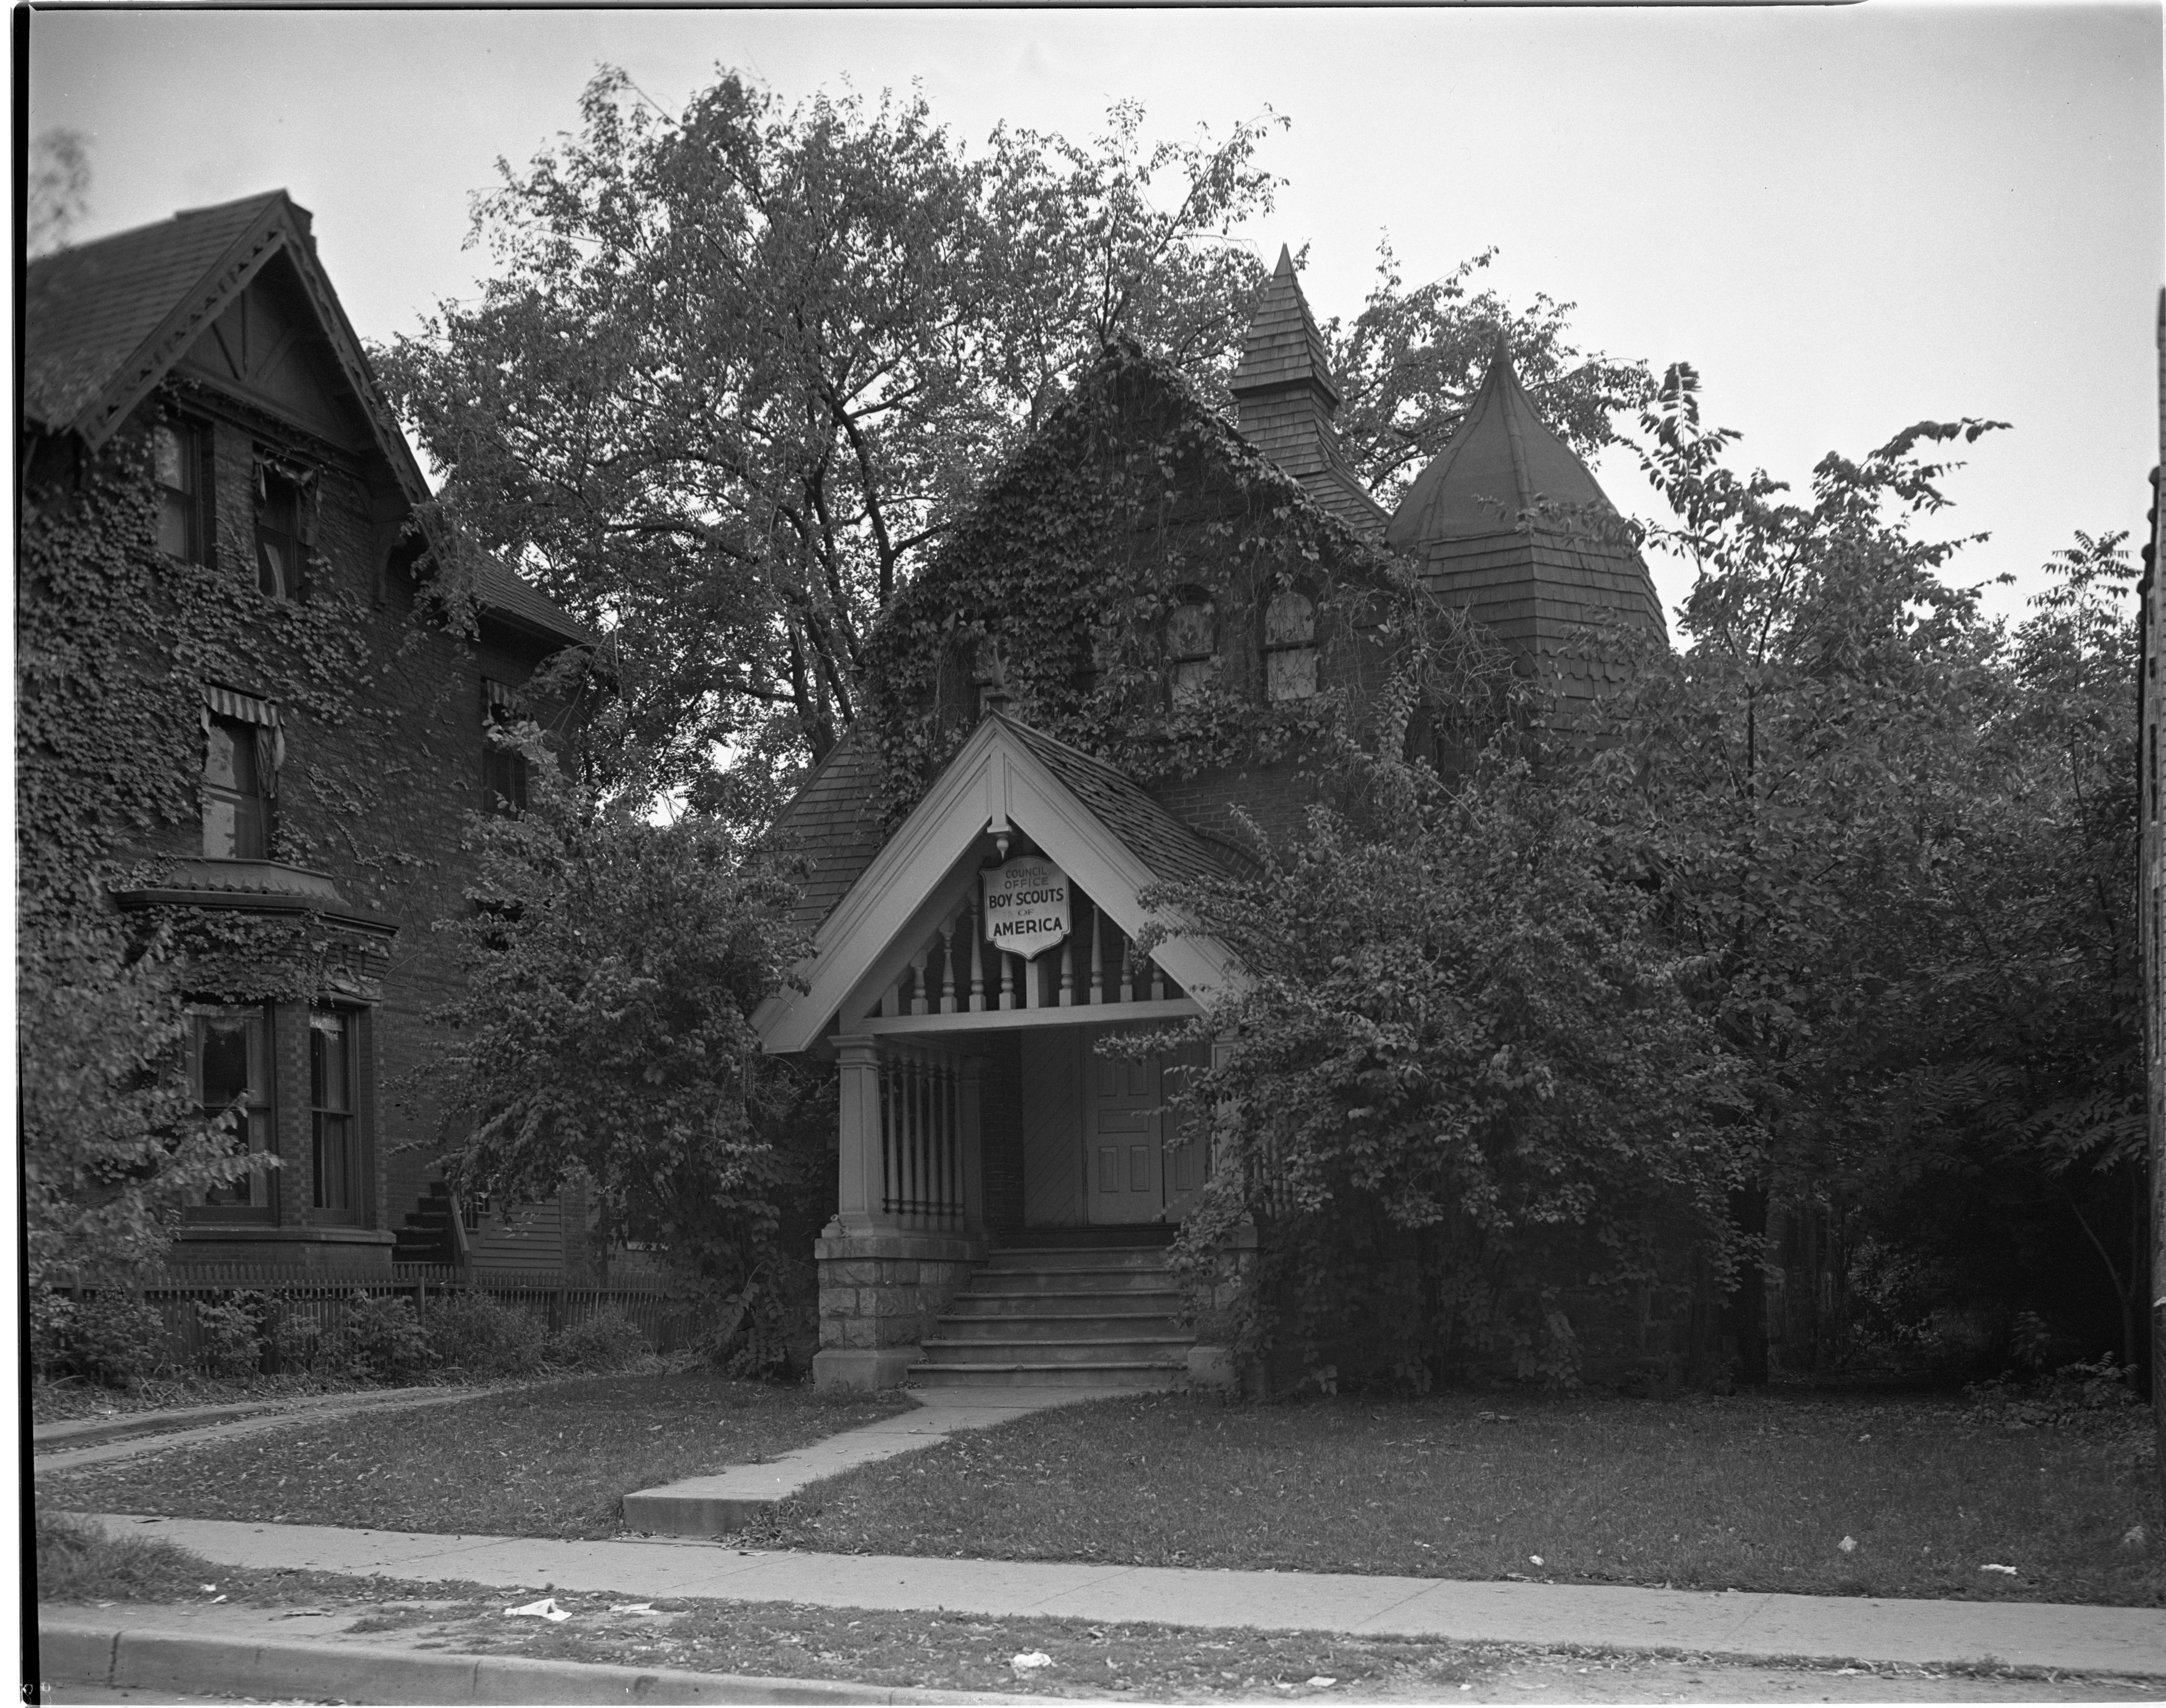 Boy Scouts Headquarters on East Huron Street in 1940, September 1973 image